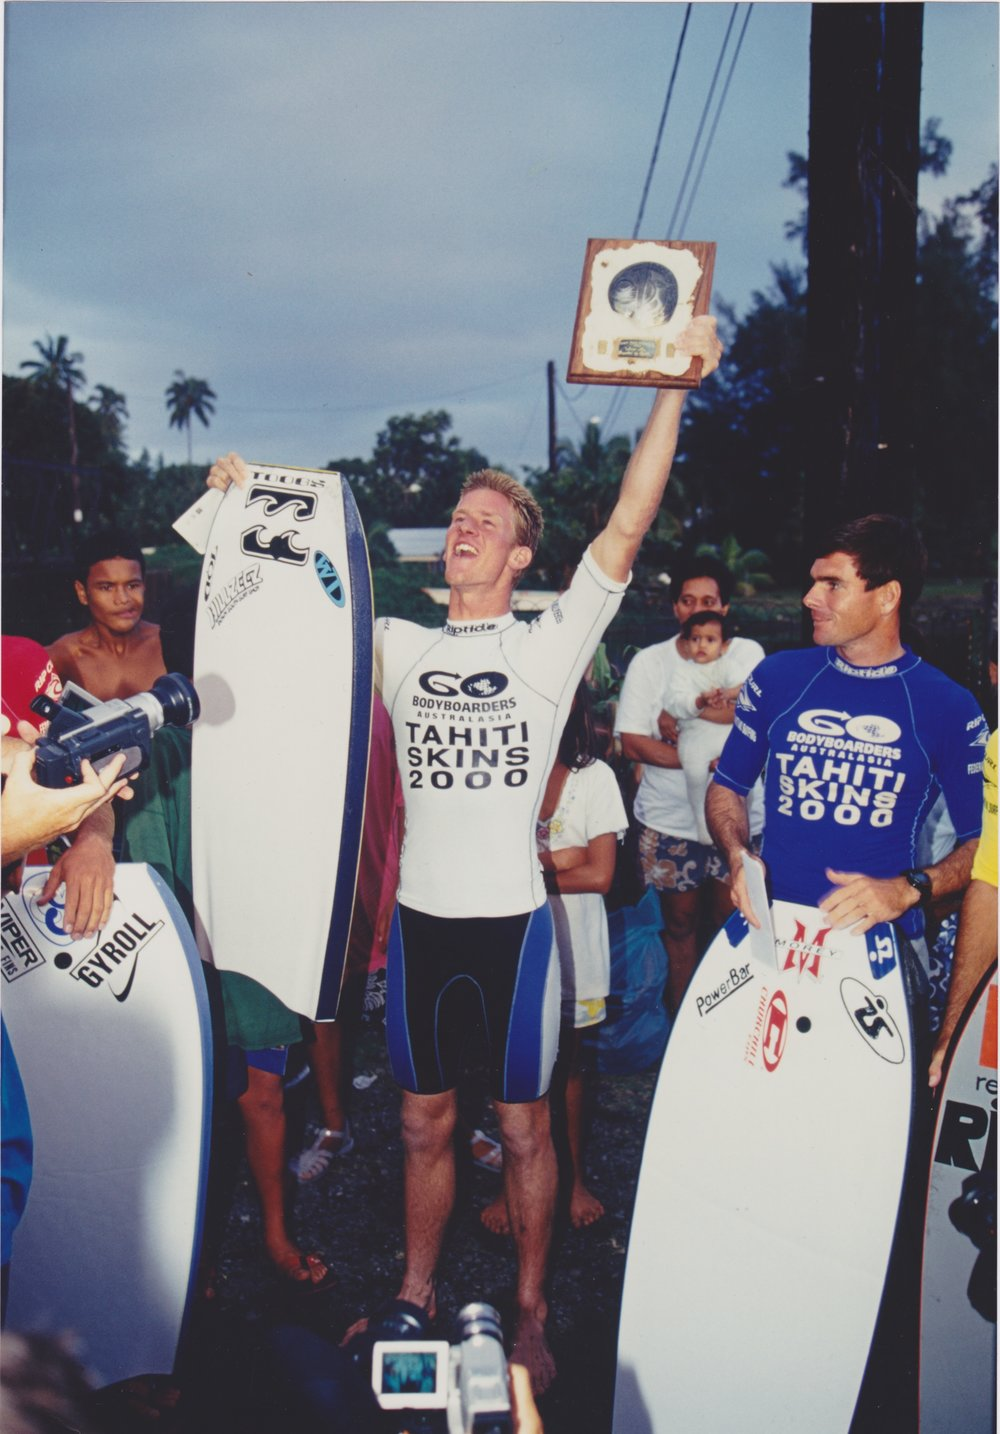 Sweet youthful victory featuring a fresh-faced Ryan hardy.